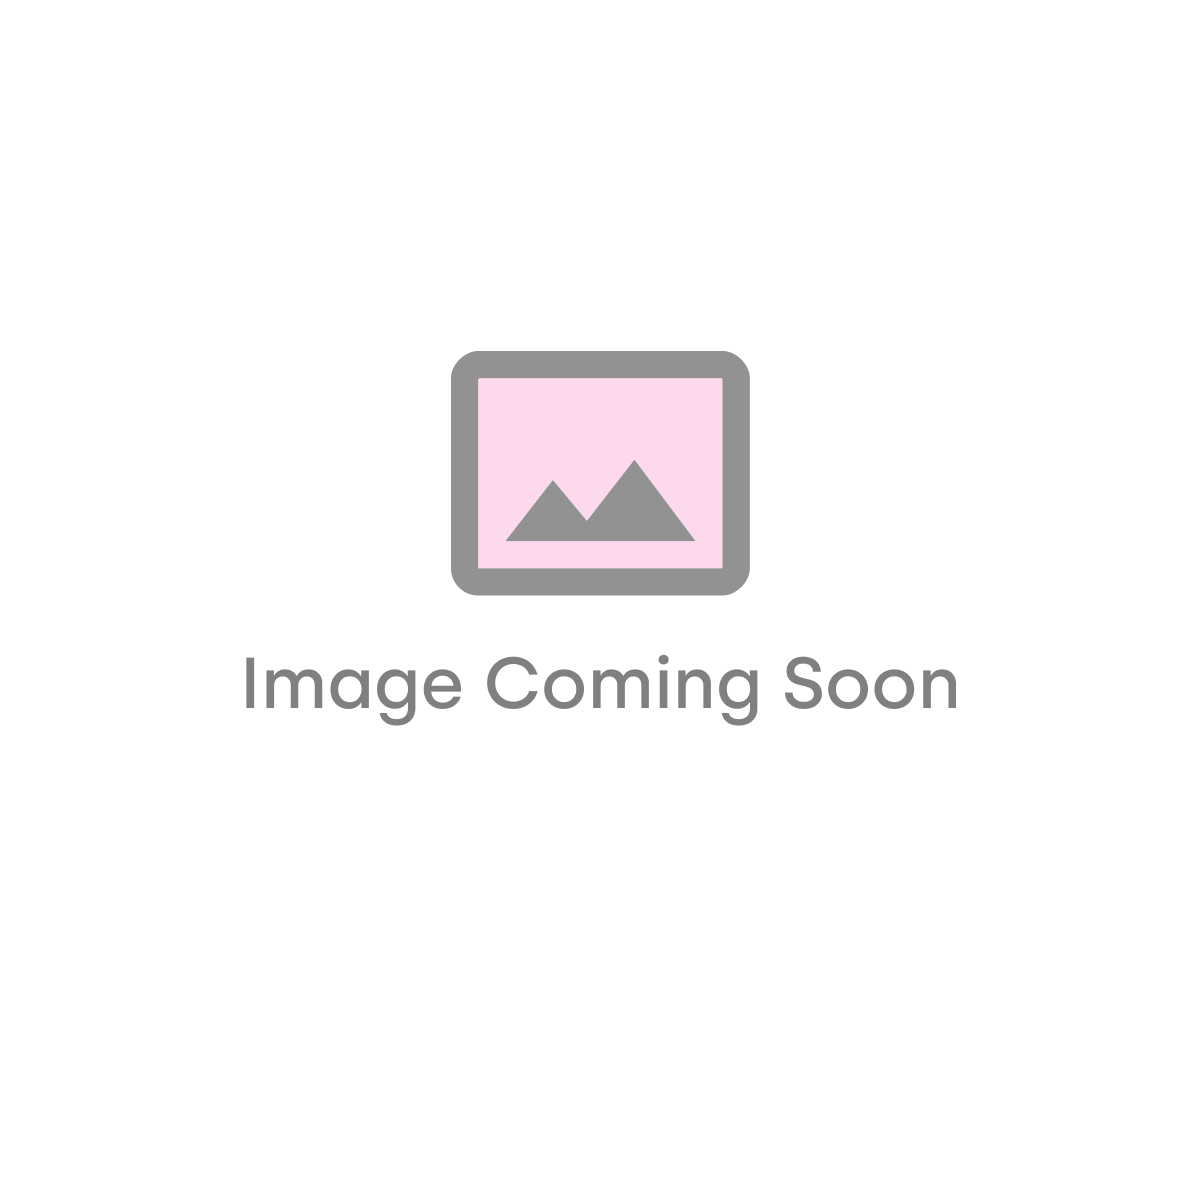 Aquadart 10 900mm Wetroom Panel - Clear Glass (18671)